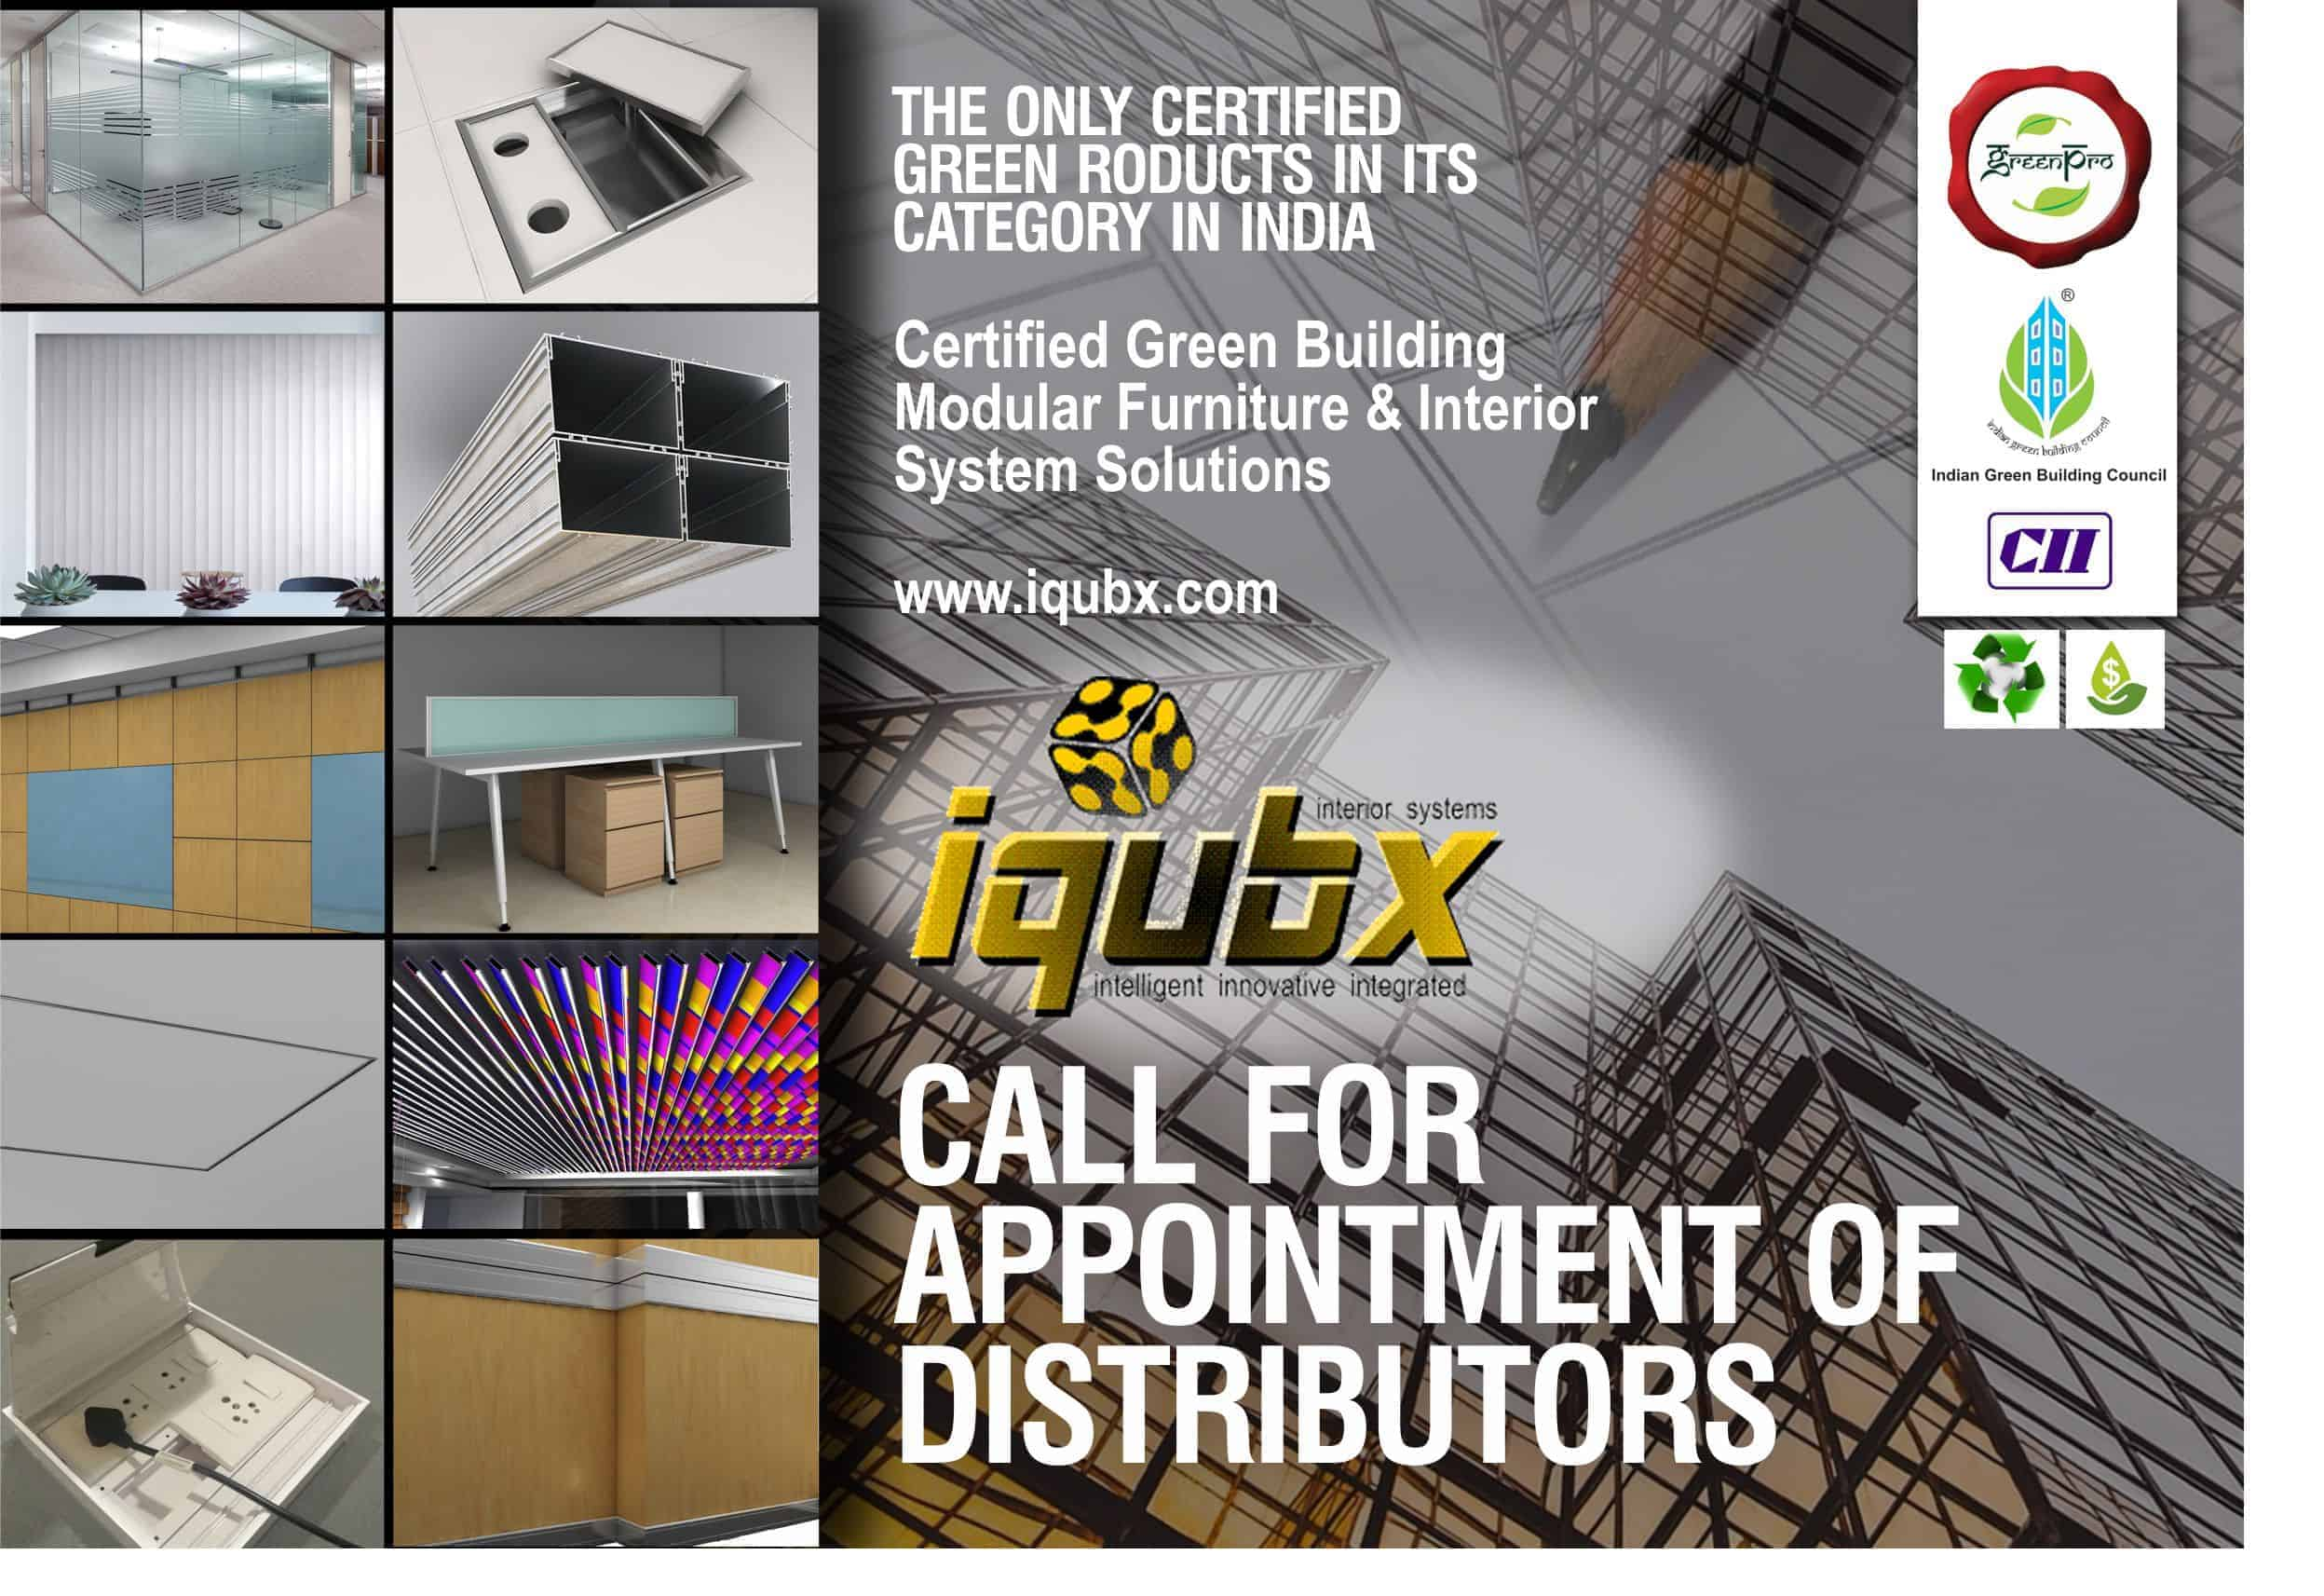 iqubx is appointing distributors all over India